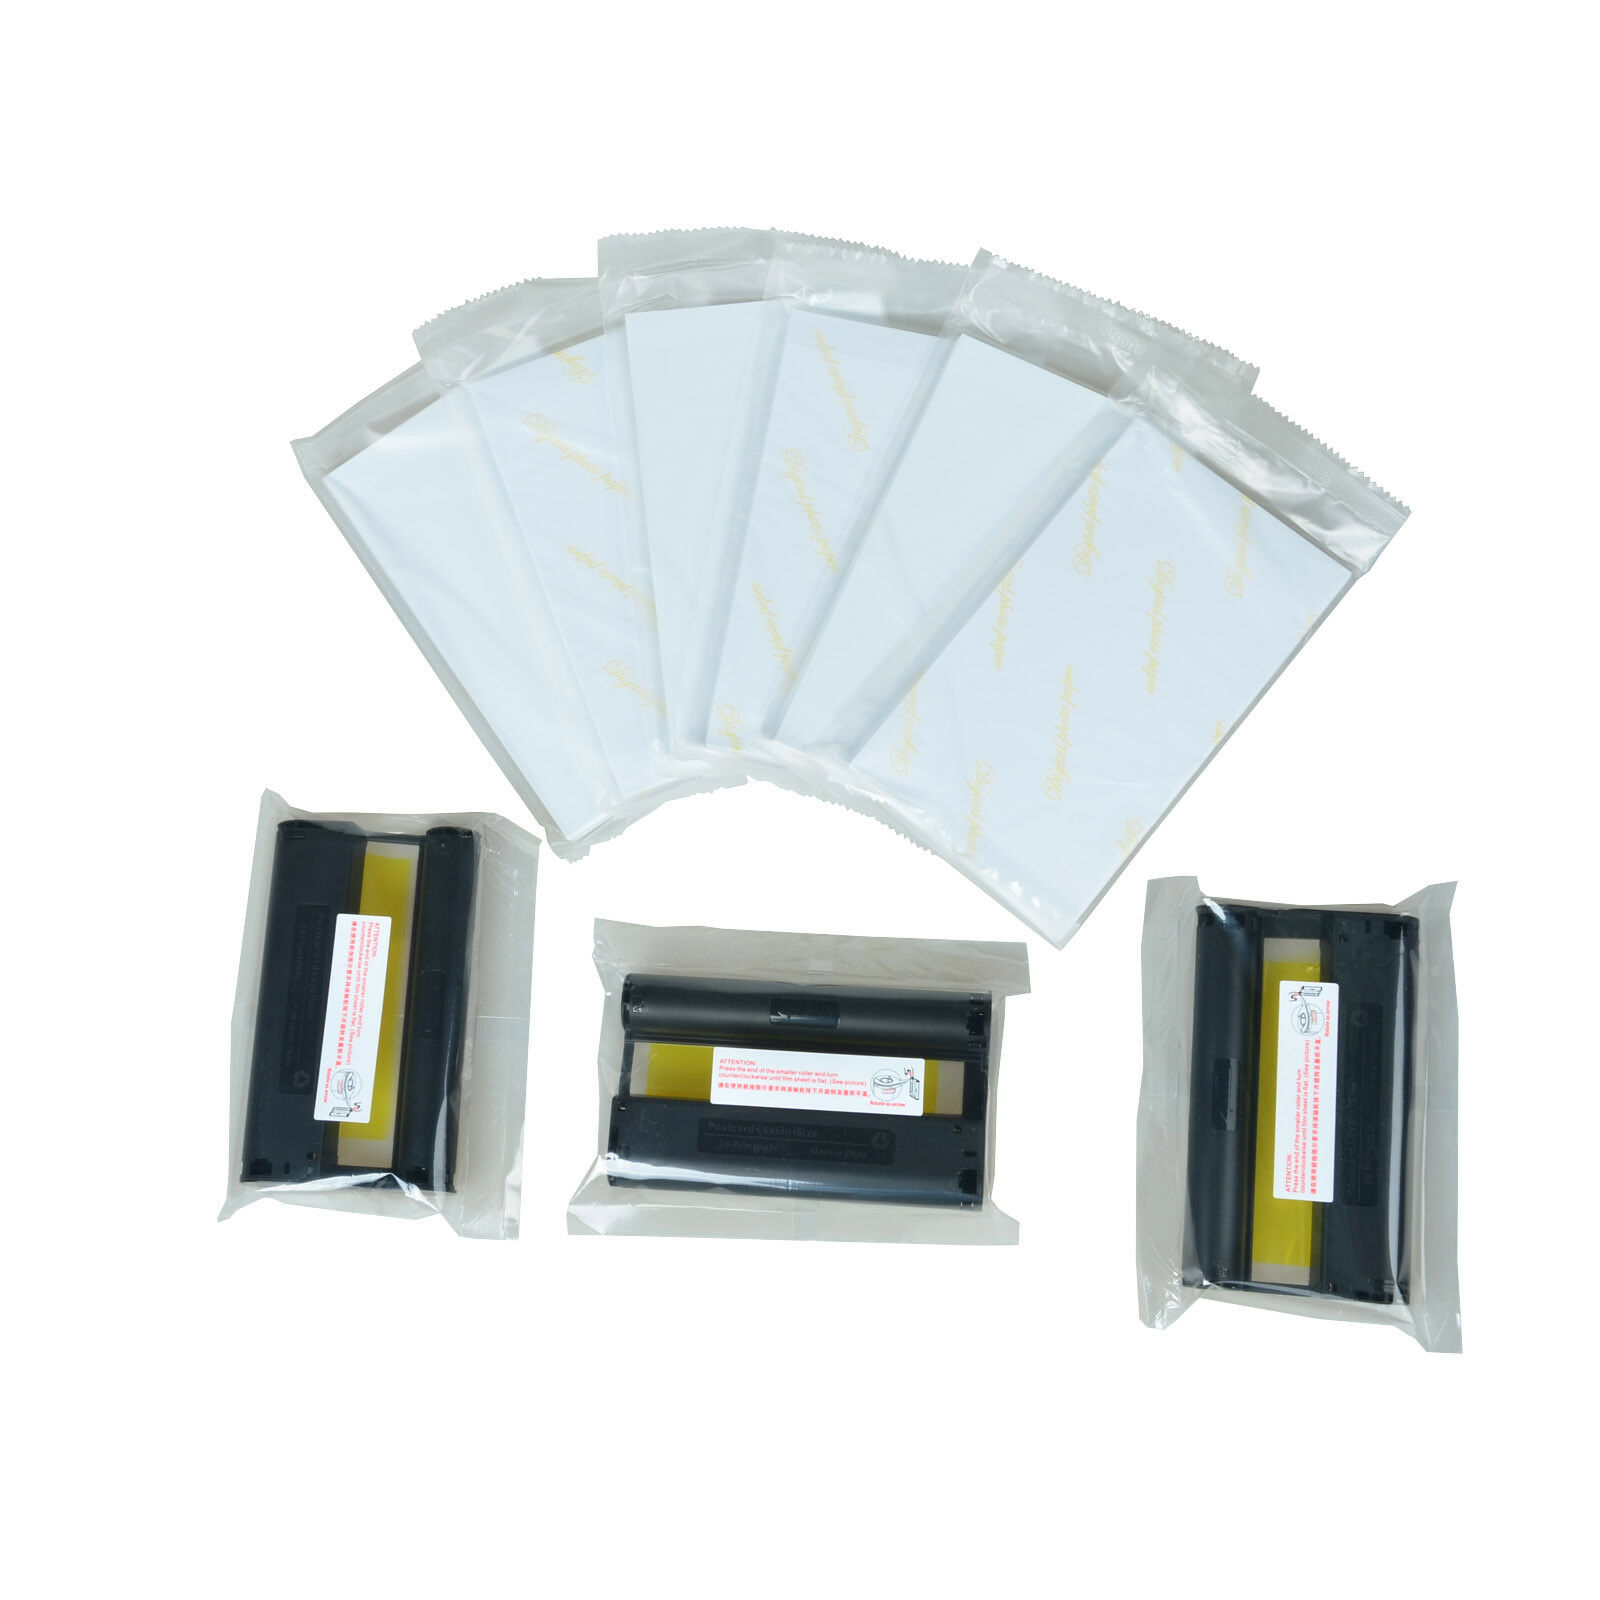 4PK KP-108IN Color 3X Ink /& 108 Paper Set for Canon Selphy CP910 CP1200 CP1300